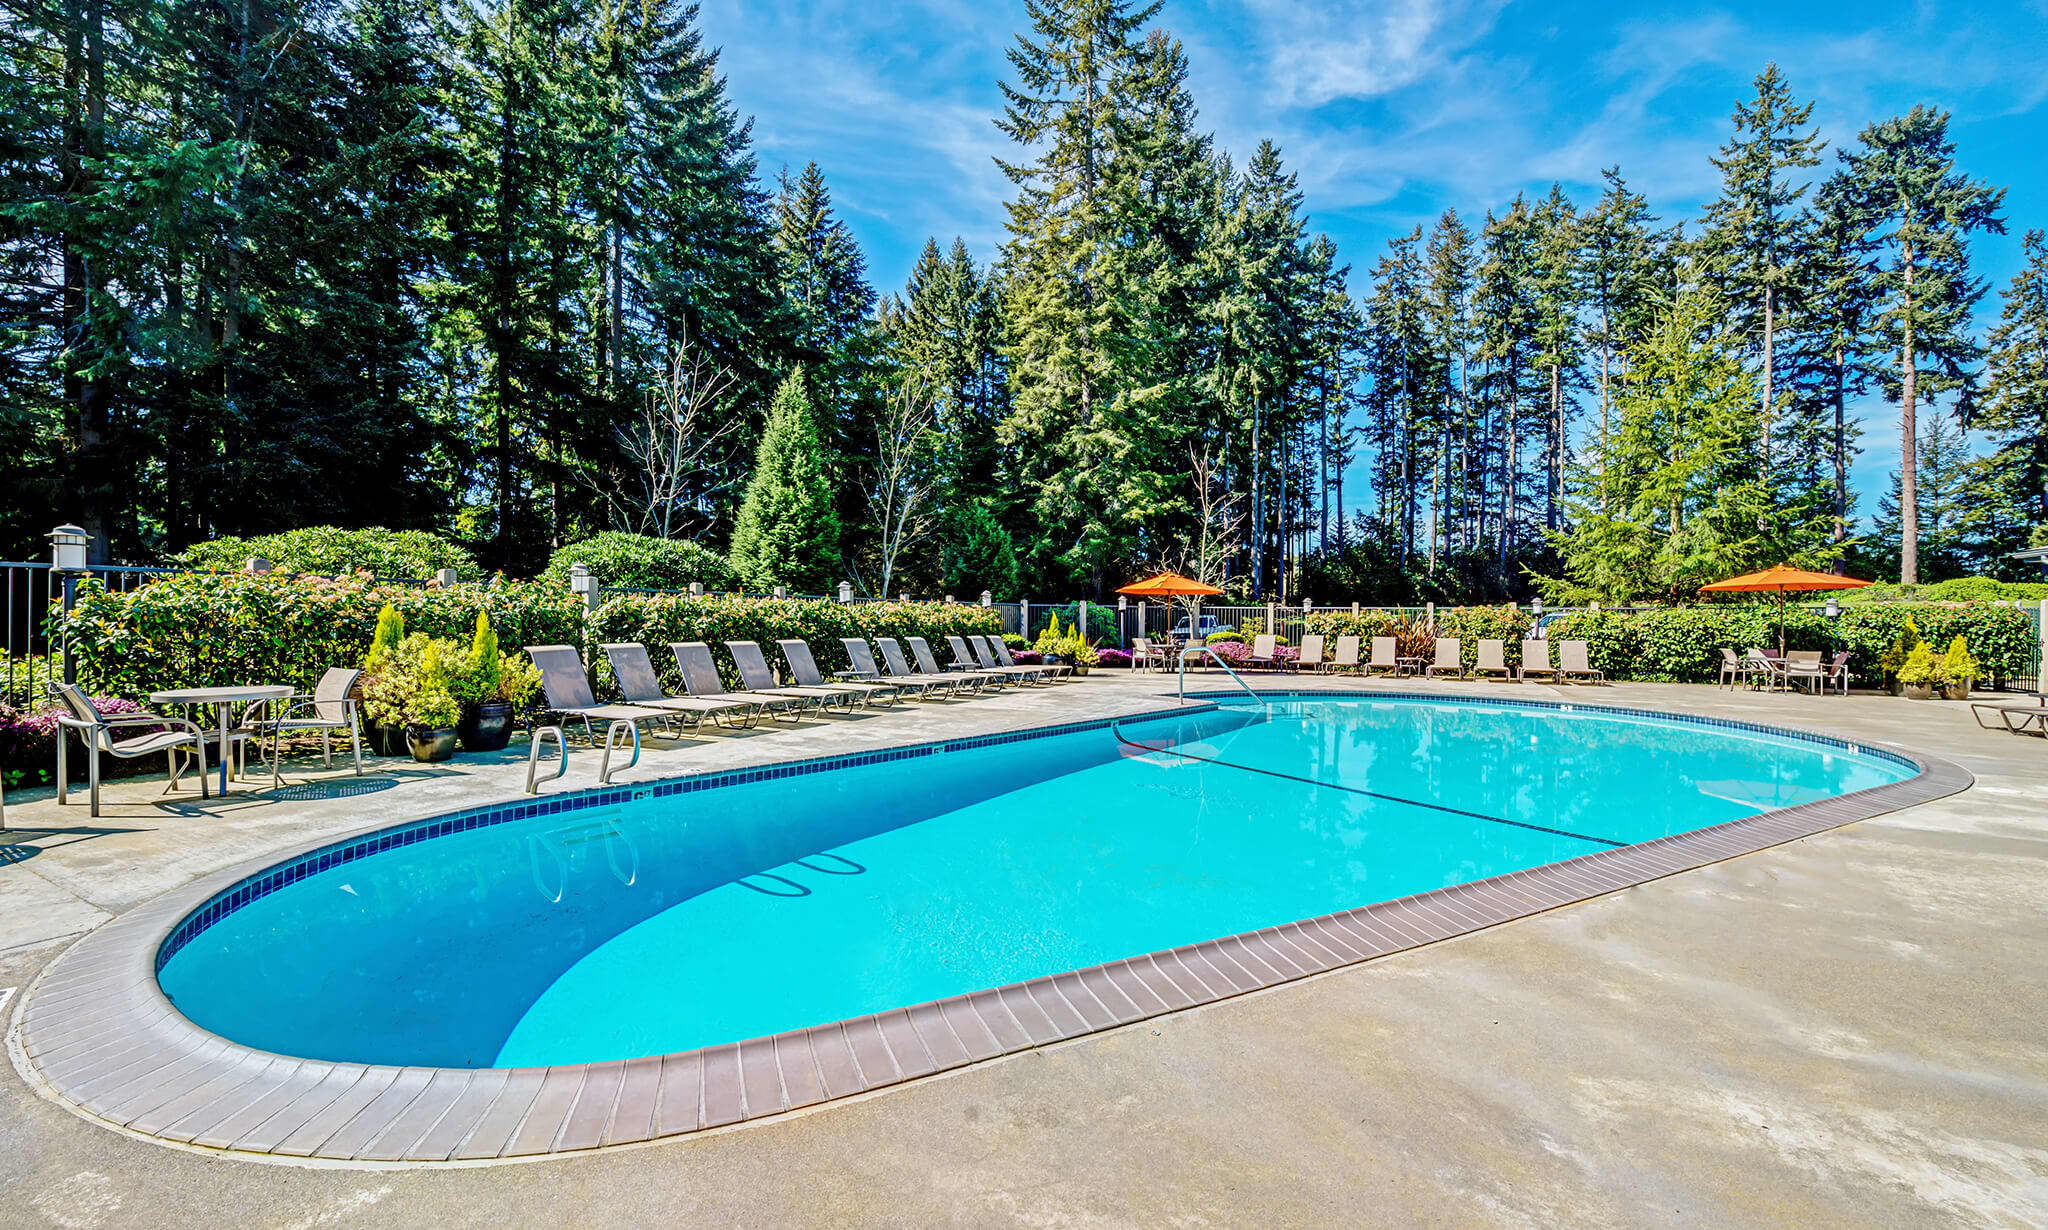 Cliffside Apartments apartments in Gig Harbor WA to rent photo 4